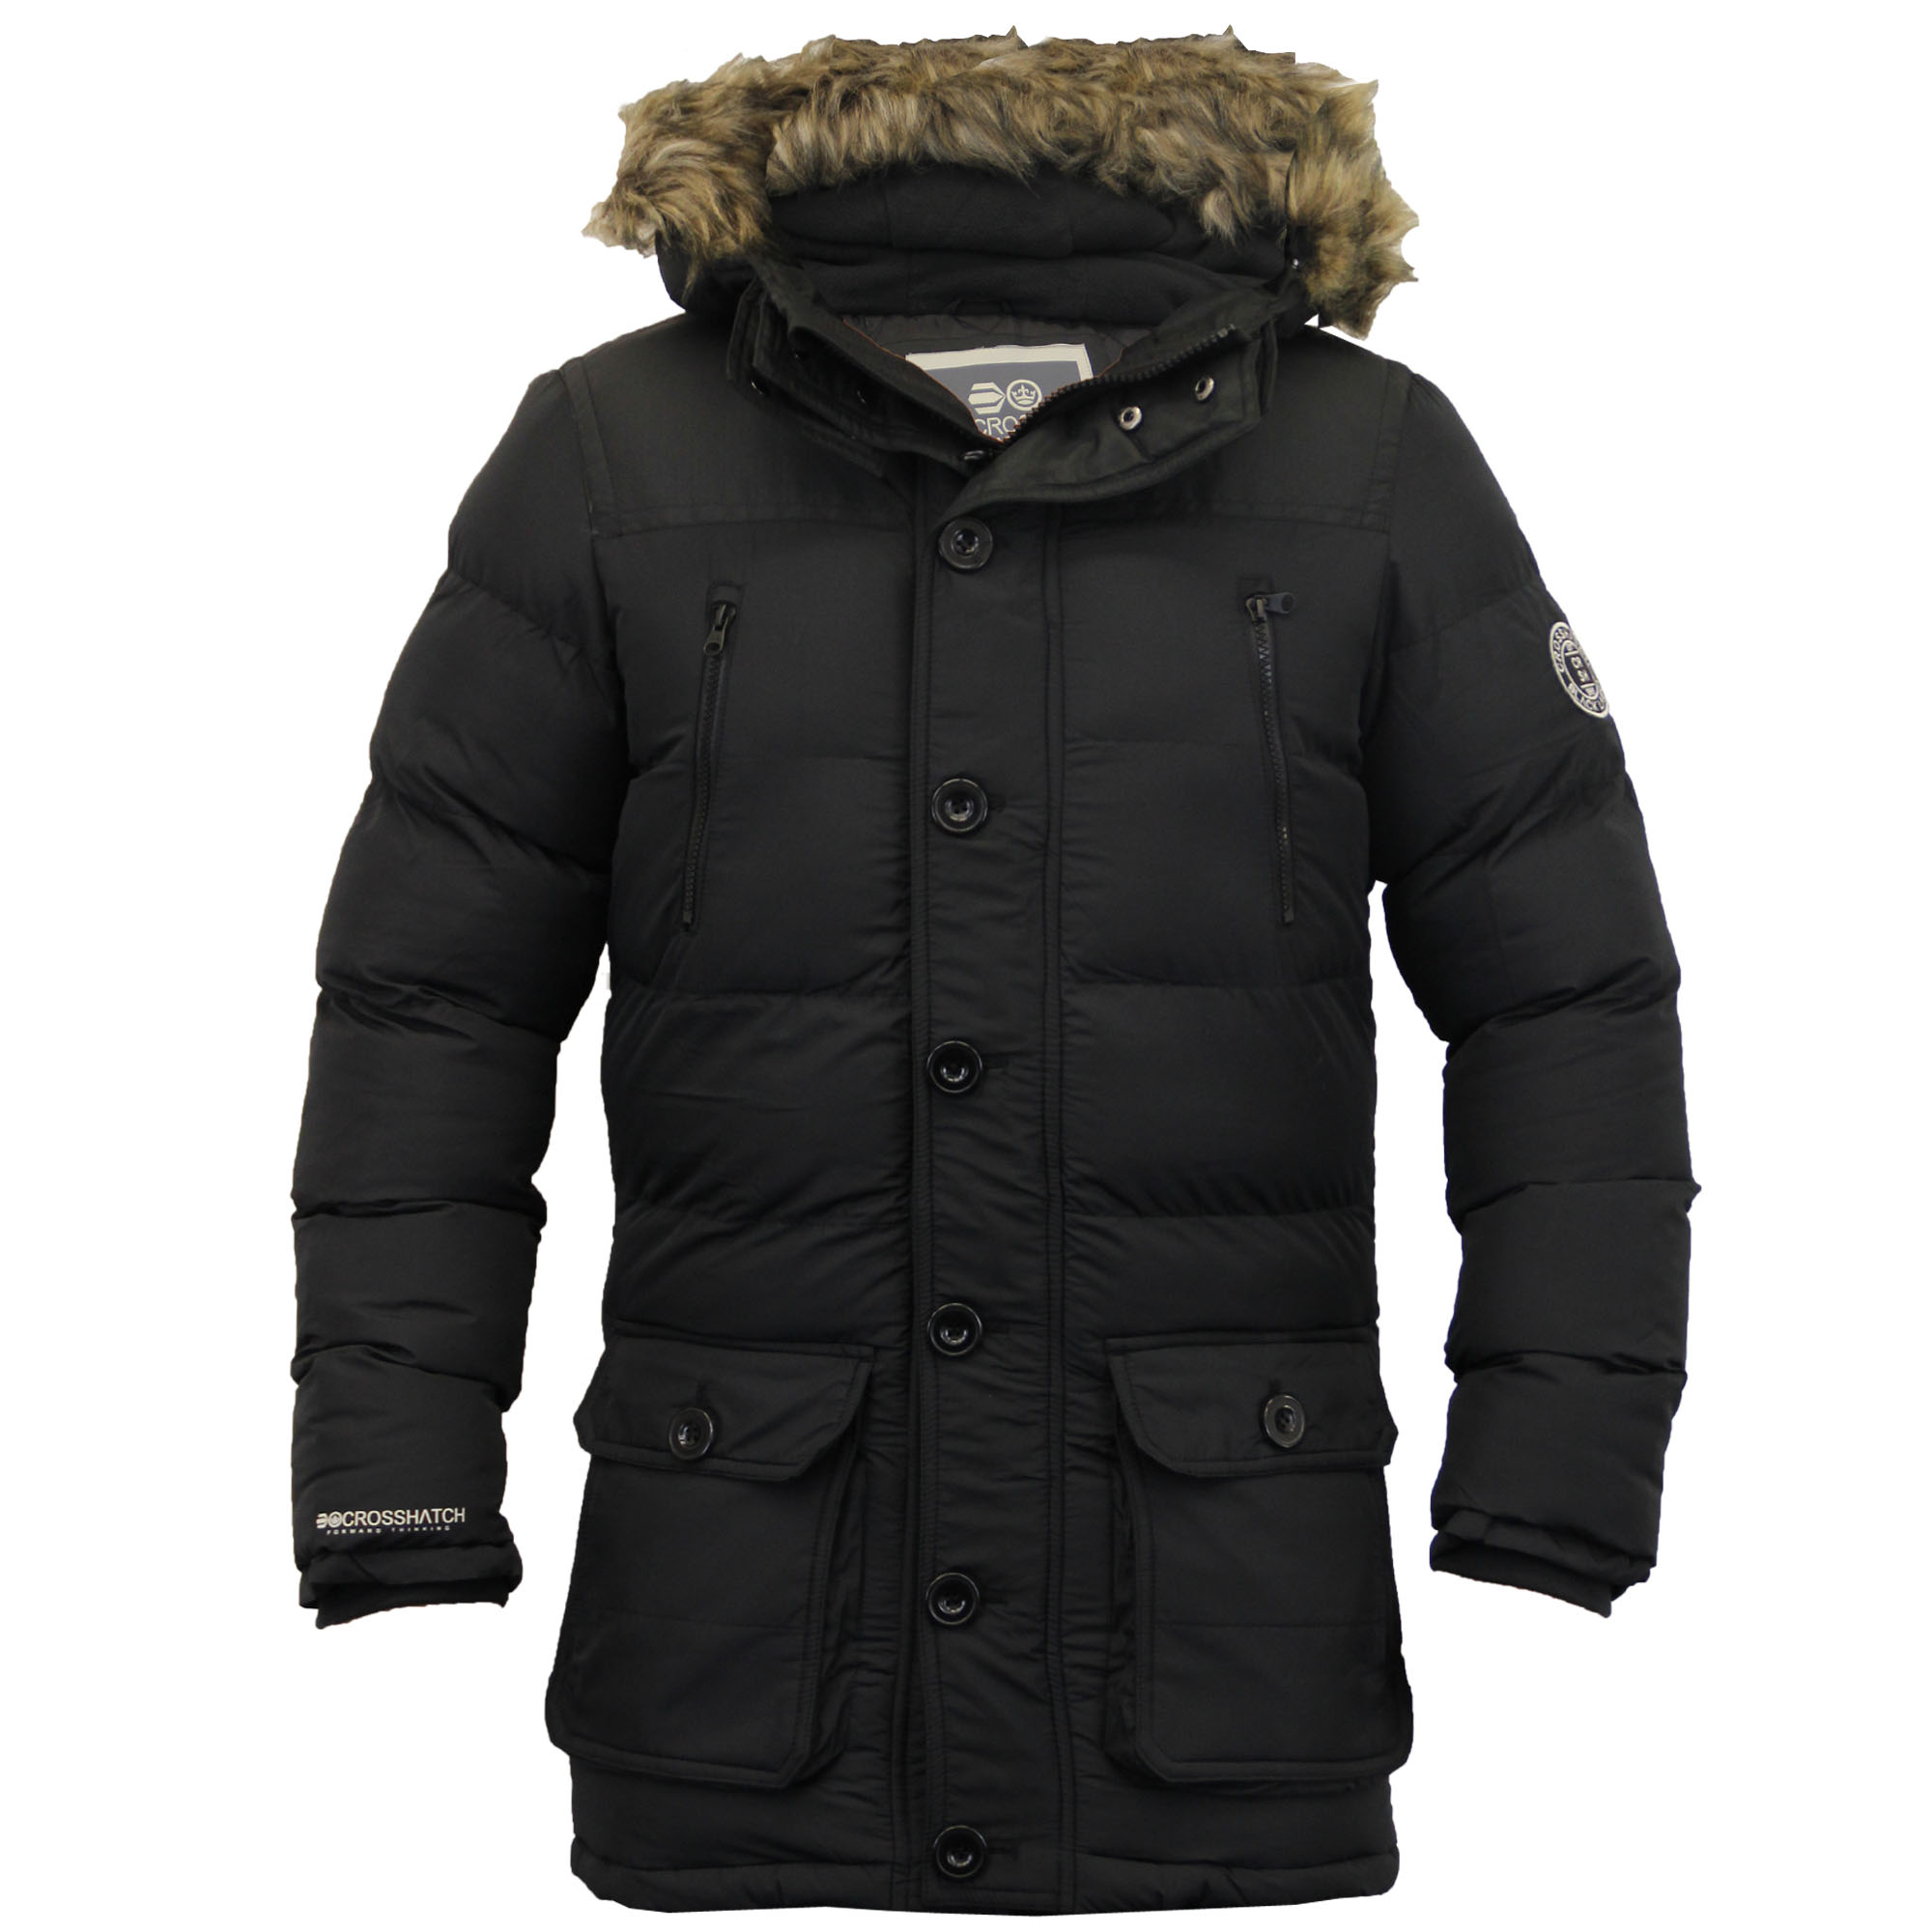 Shop the Latest Collection of Parka Jackets & Coats for Men Online at exploreblogirvd.gq FREE SHIPPING AVAILABLE! Macy's Presents: The Edit- A curated mix of fashion and inspiration Check It Out. Free Shipping with $99 purchase + Free Store Pickup. Contiguous US. Sean John Men's Hooded Parka with Faux-Fur Trim.